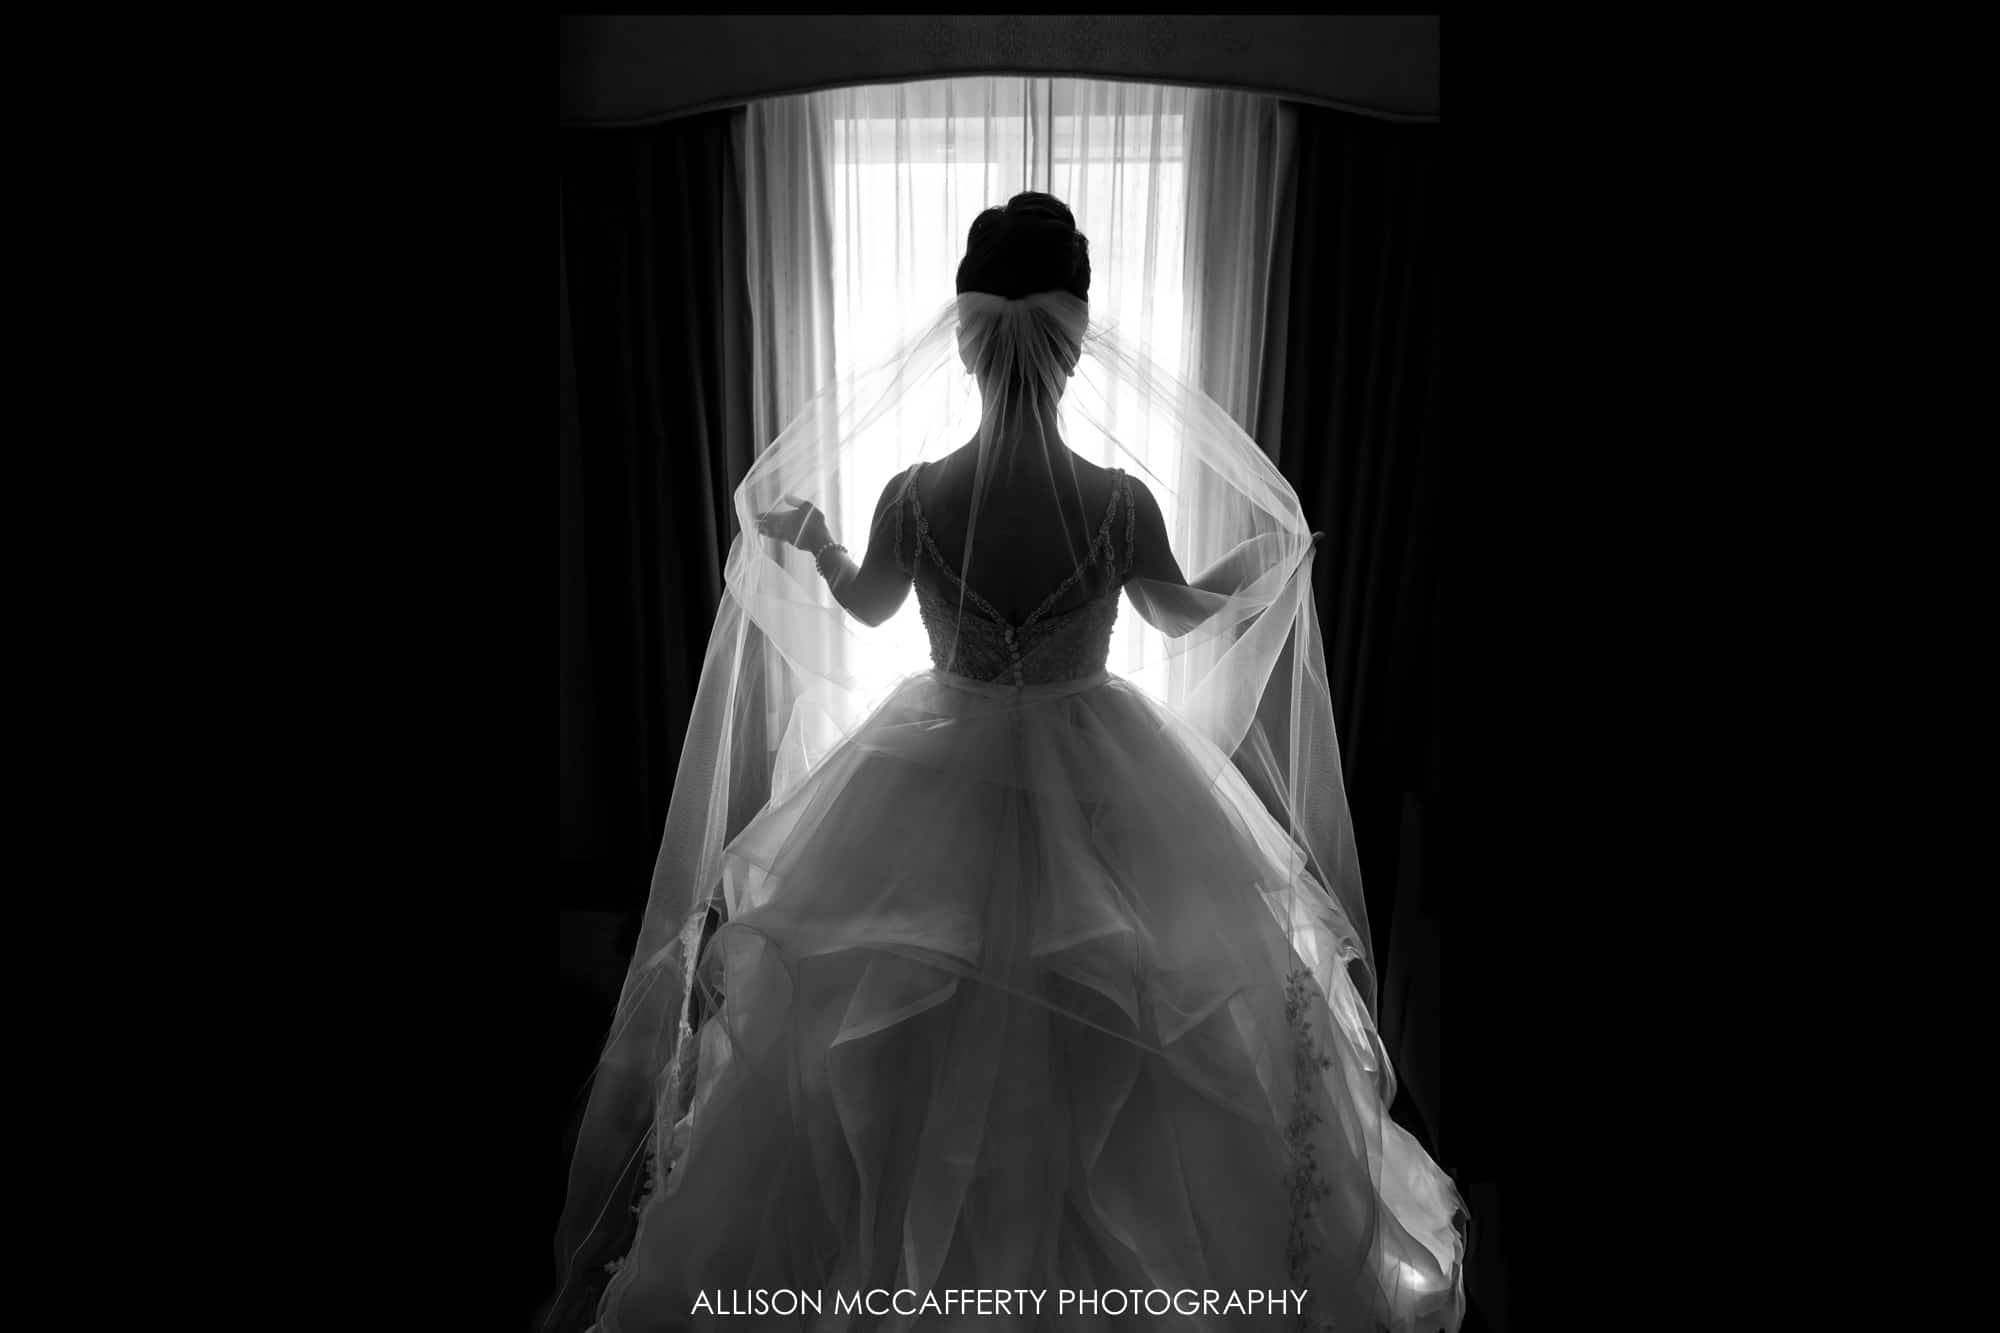 Black and White silhouette of a bride with her veil